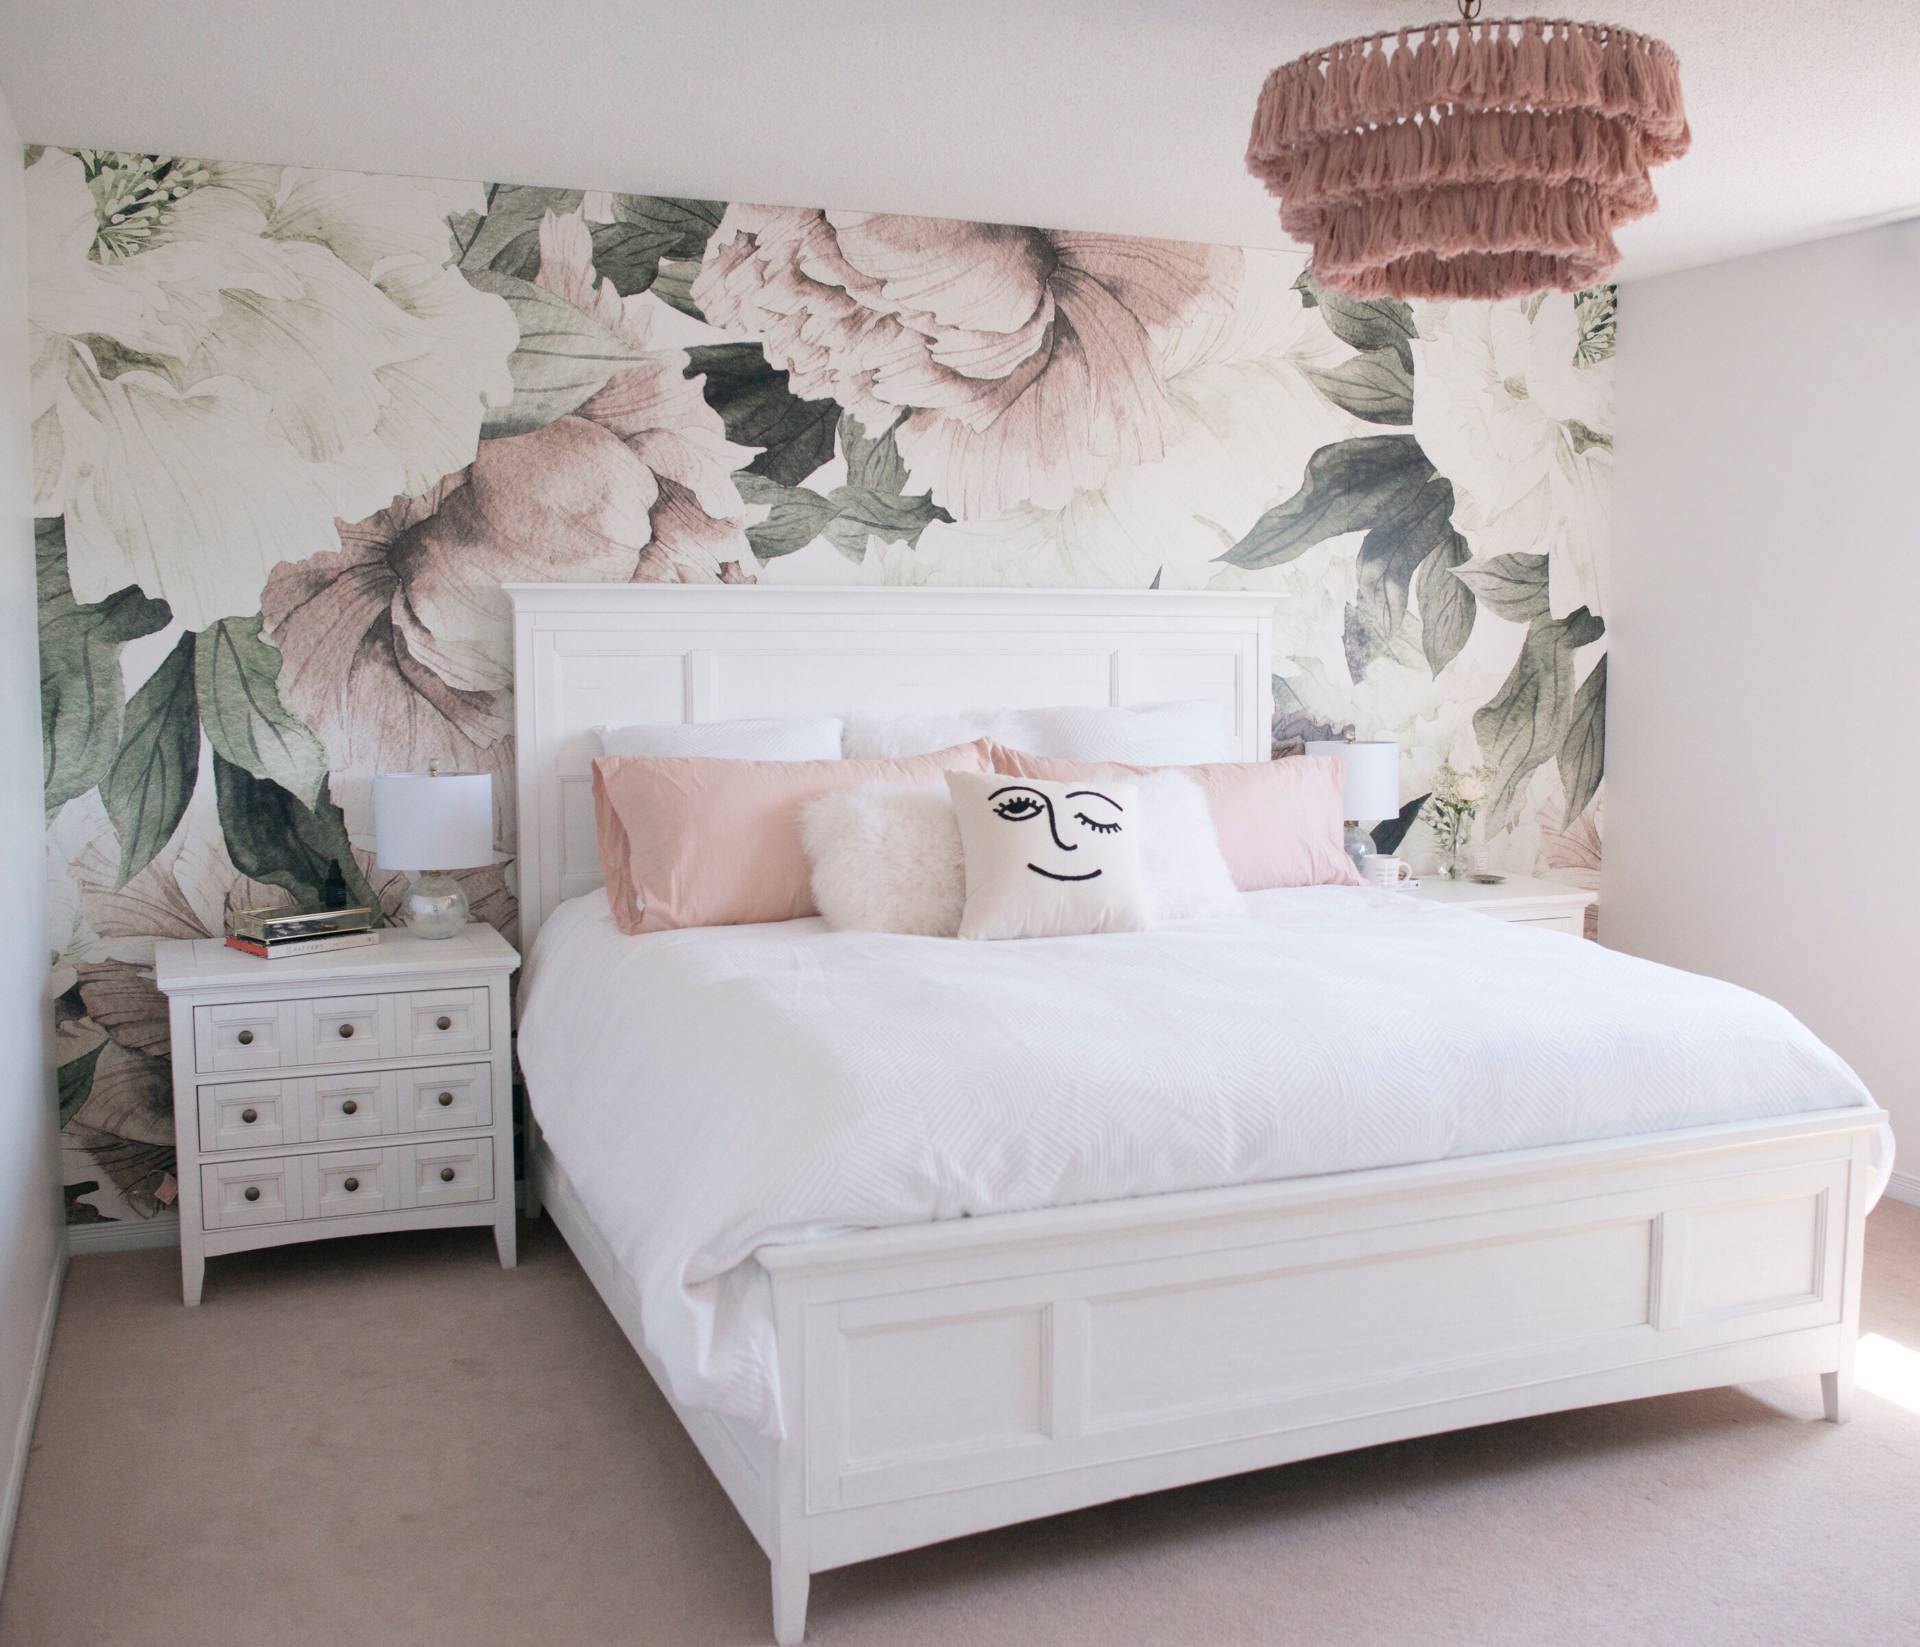 Our Master Bedroom Reveal With Urban Barn